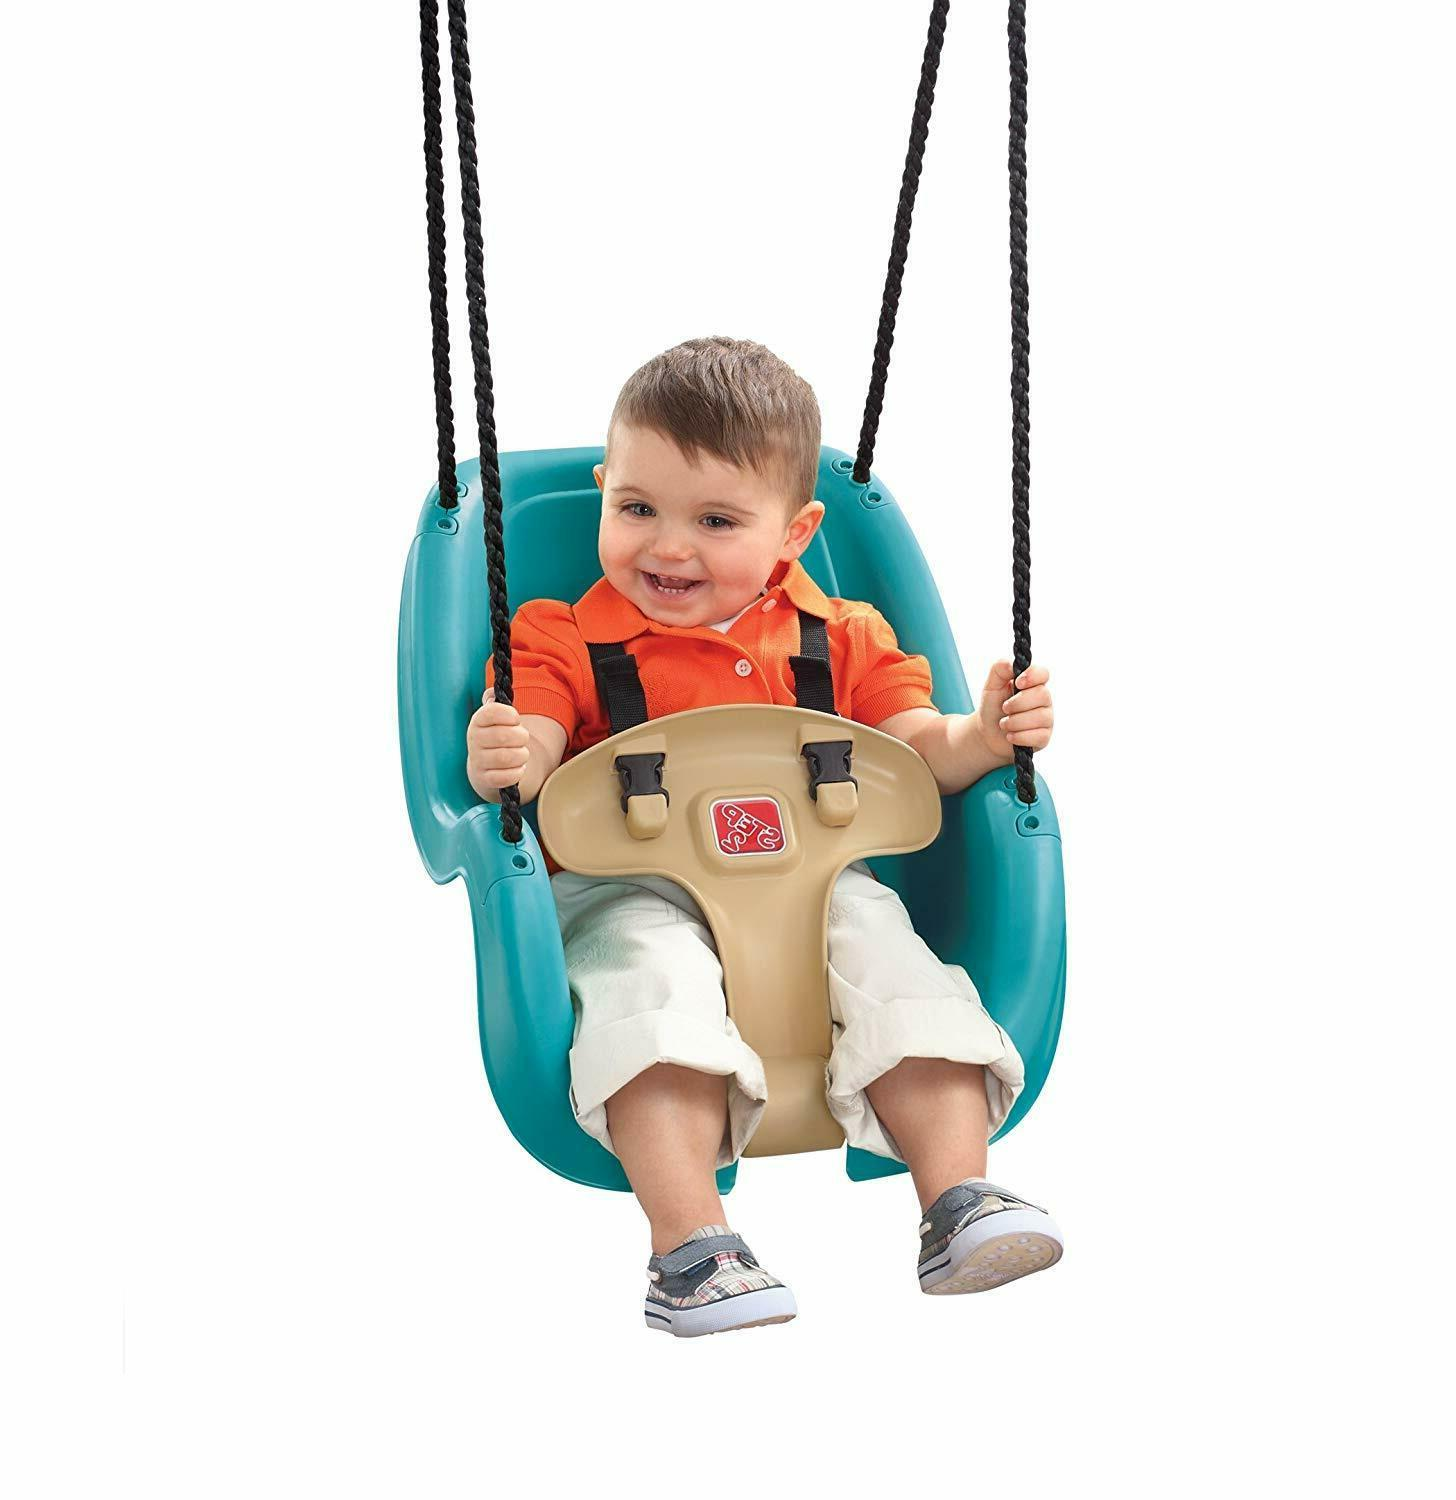 New Opened Box Infant To Seat, Turquoise w/